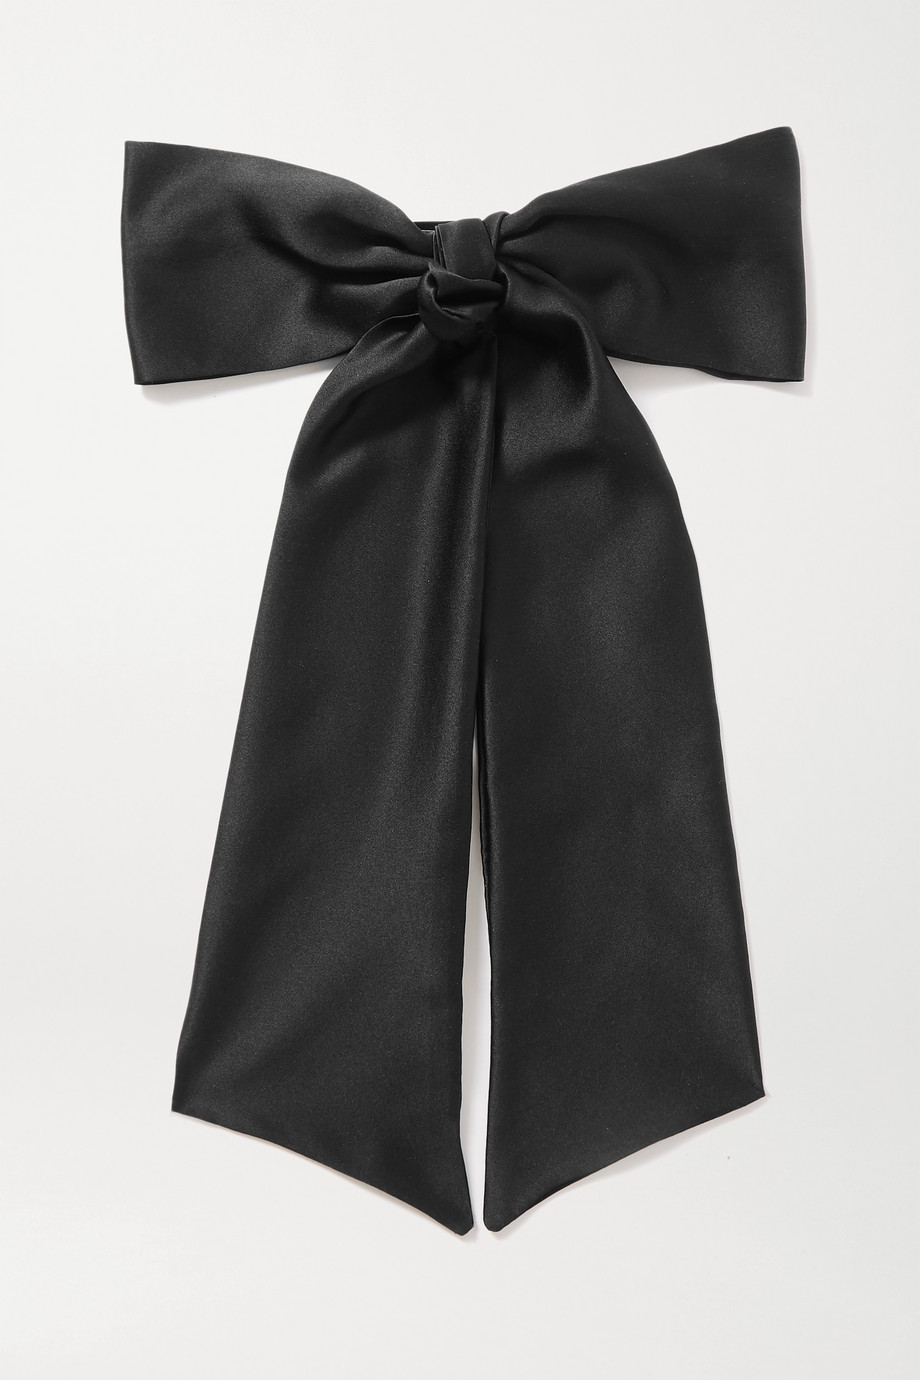 Sophie Buhai Oversized silk-satin hair clip